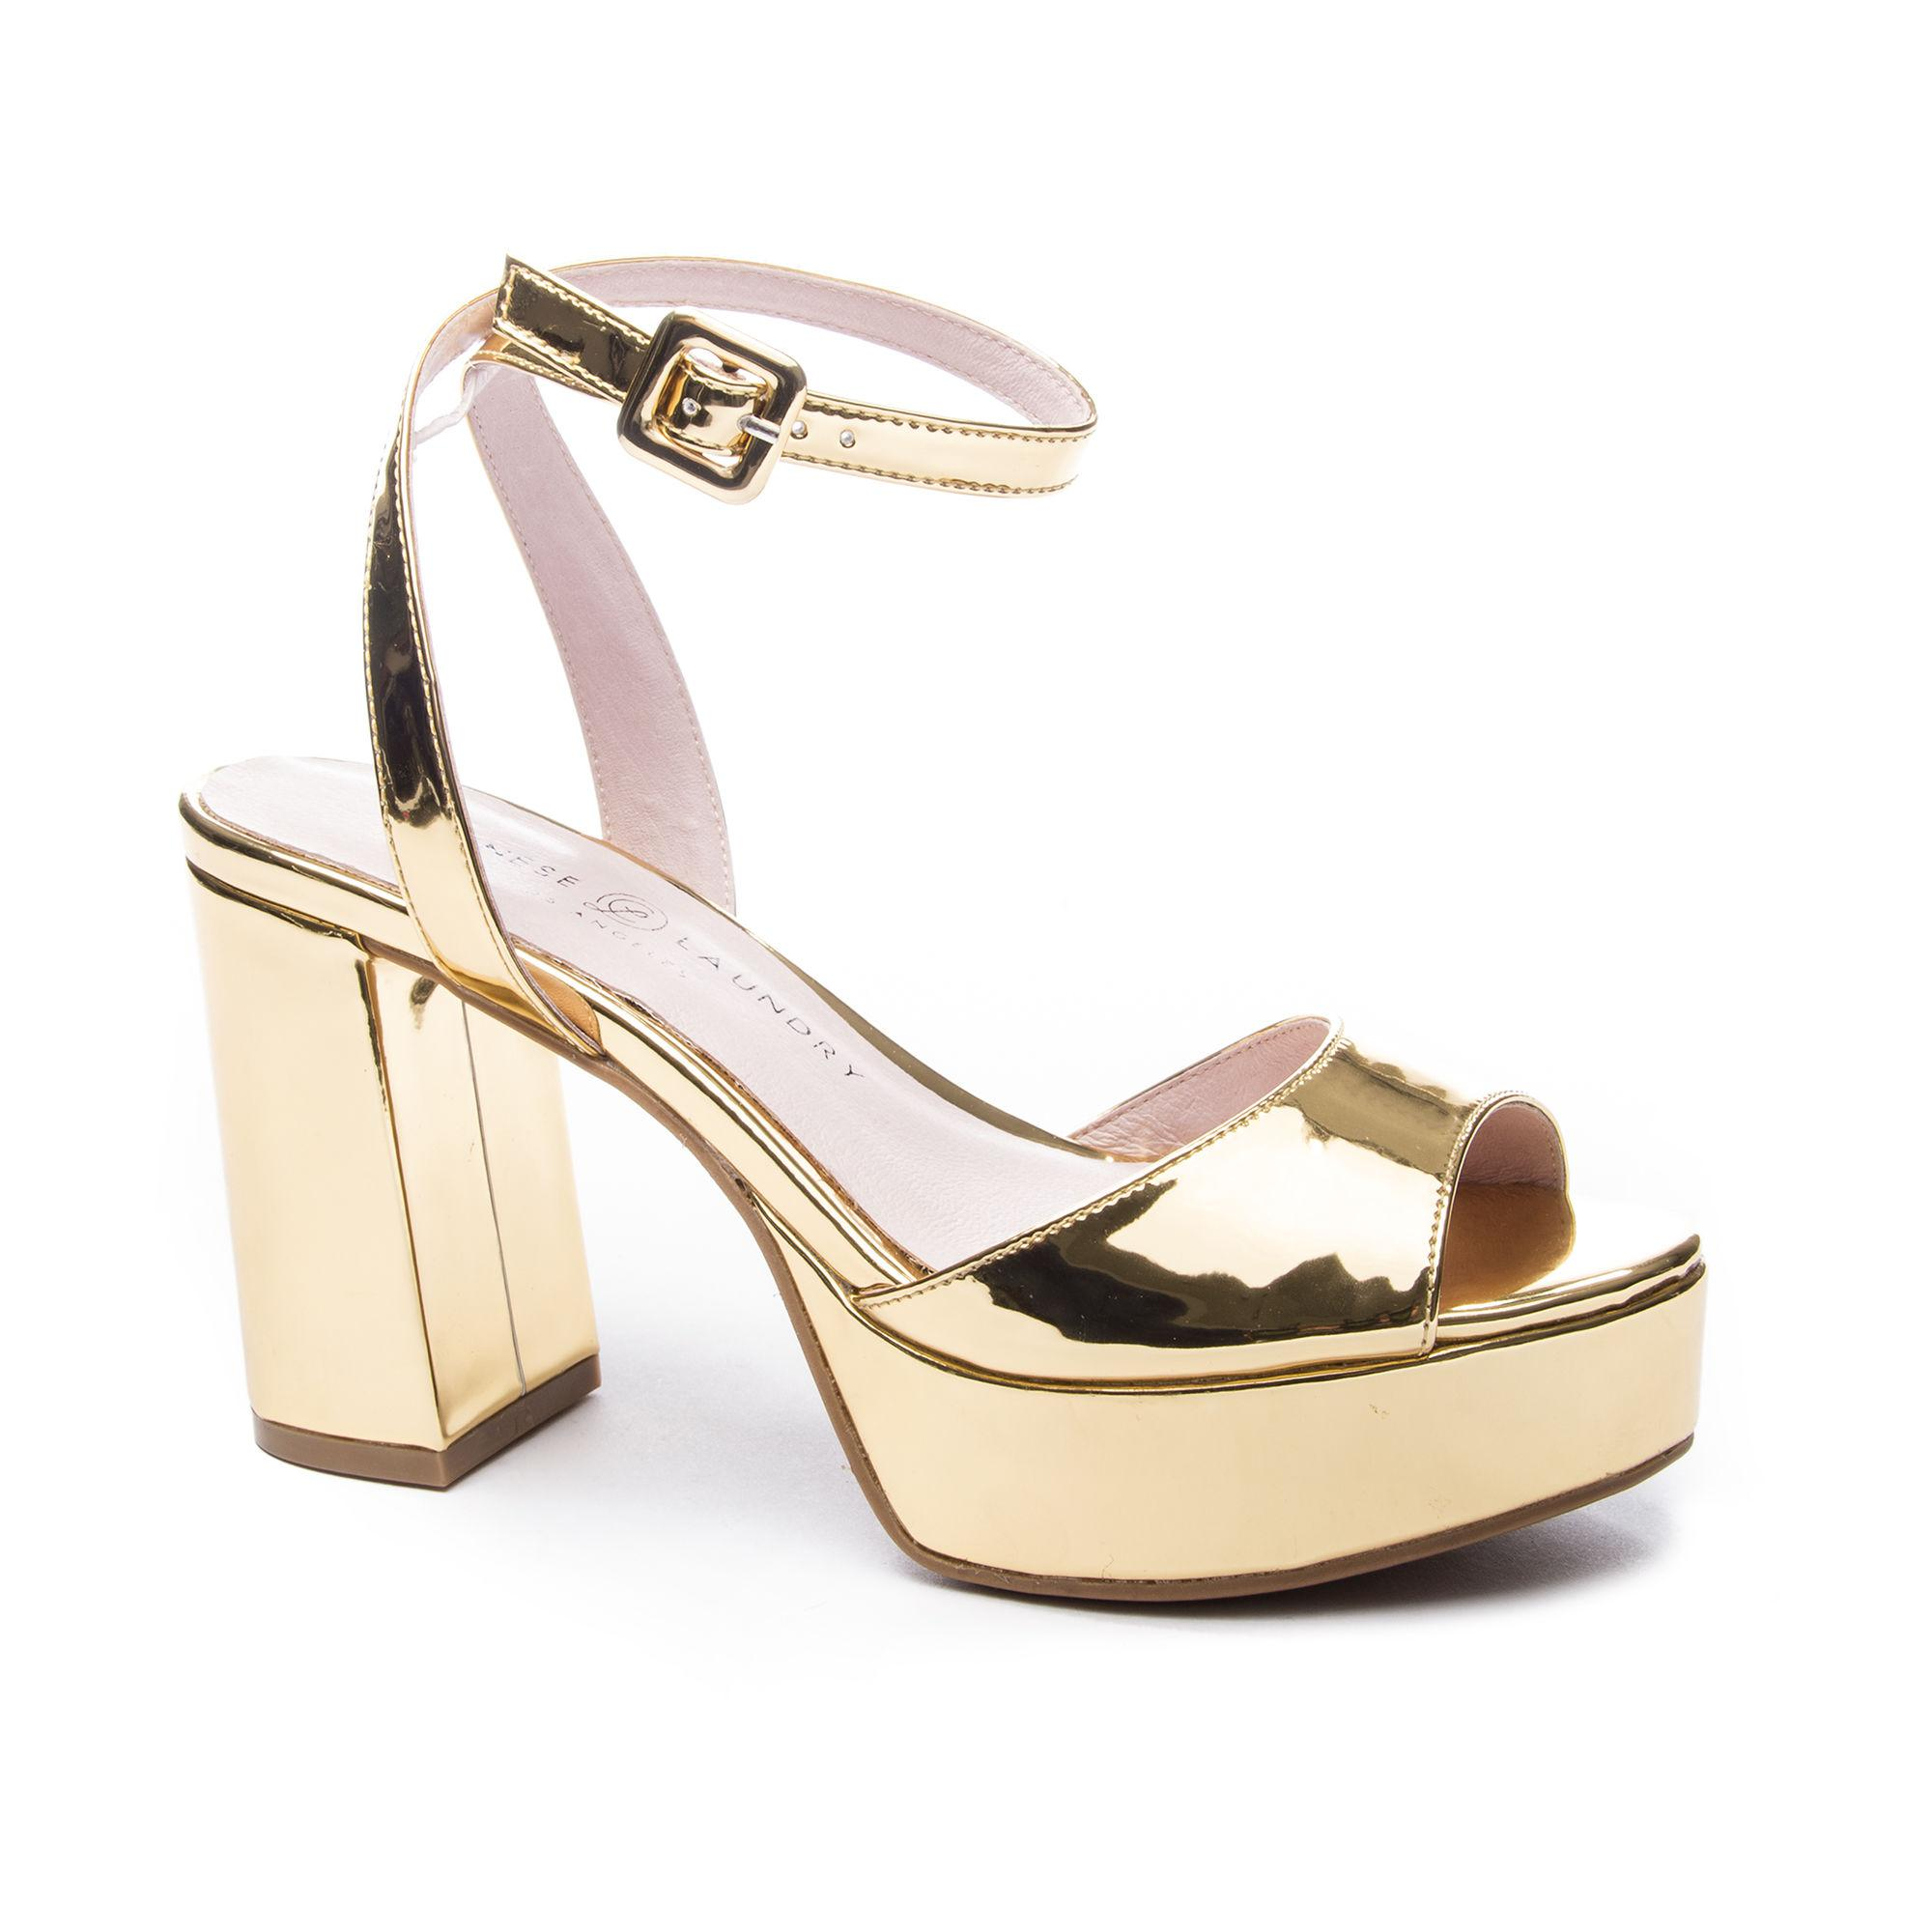 31fe0ad1a2e Lyst - Chinese Laundry Theresa Platform Sandal in Metallic